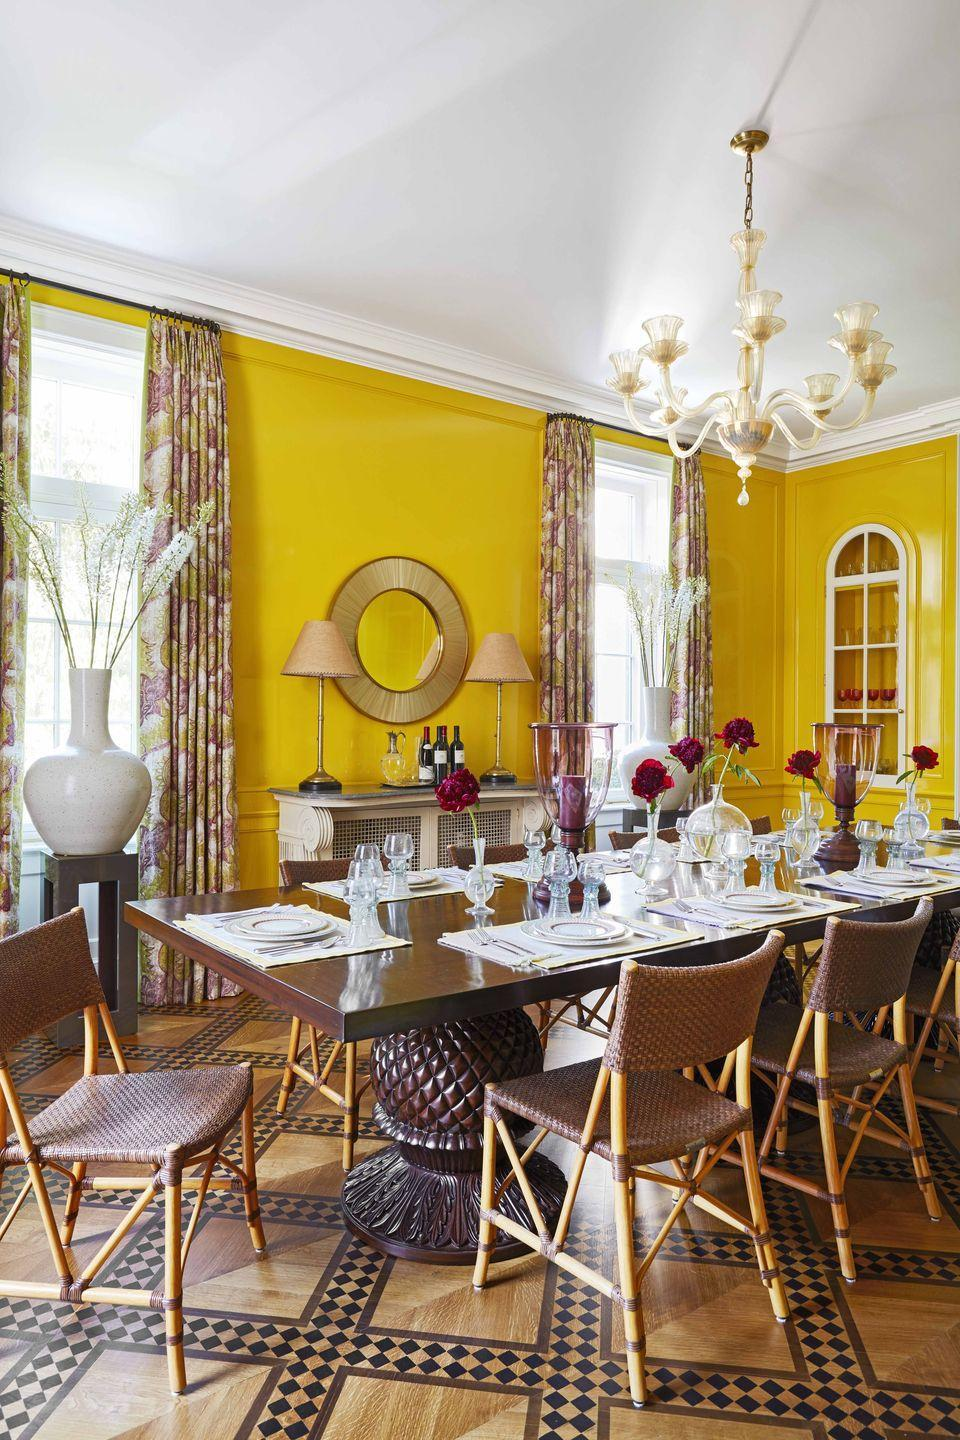 """<p>Can't you just feel the warmth in this room? It's no surprise the color yellow evokes feelings of energy, brightness, and those warm fuzzies, making it great for donning a room or two in your home. We love this rich lacquered yellow in designer <a href=""""https://www.veranda.com/decorating-ideas/a27105026/katie-ridder-hamptons-home/"""" rel=""""nofollow noopener"""" target=""""_blank"""" data-ylk=""""slk:Katie Ridder's Hamptons dining room"""" class=""""link rapid-noclick-resp"""">Katie Ridder's Hamptons dining room</a>, which invites stimulating conversation and keeps guests feeling cheerful no matter how gray and dreadful it may get outside. </p>"""